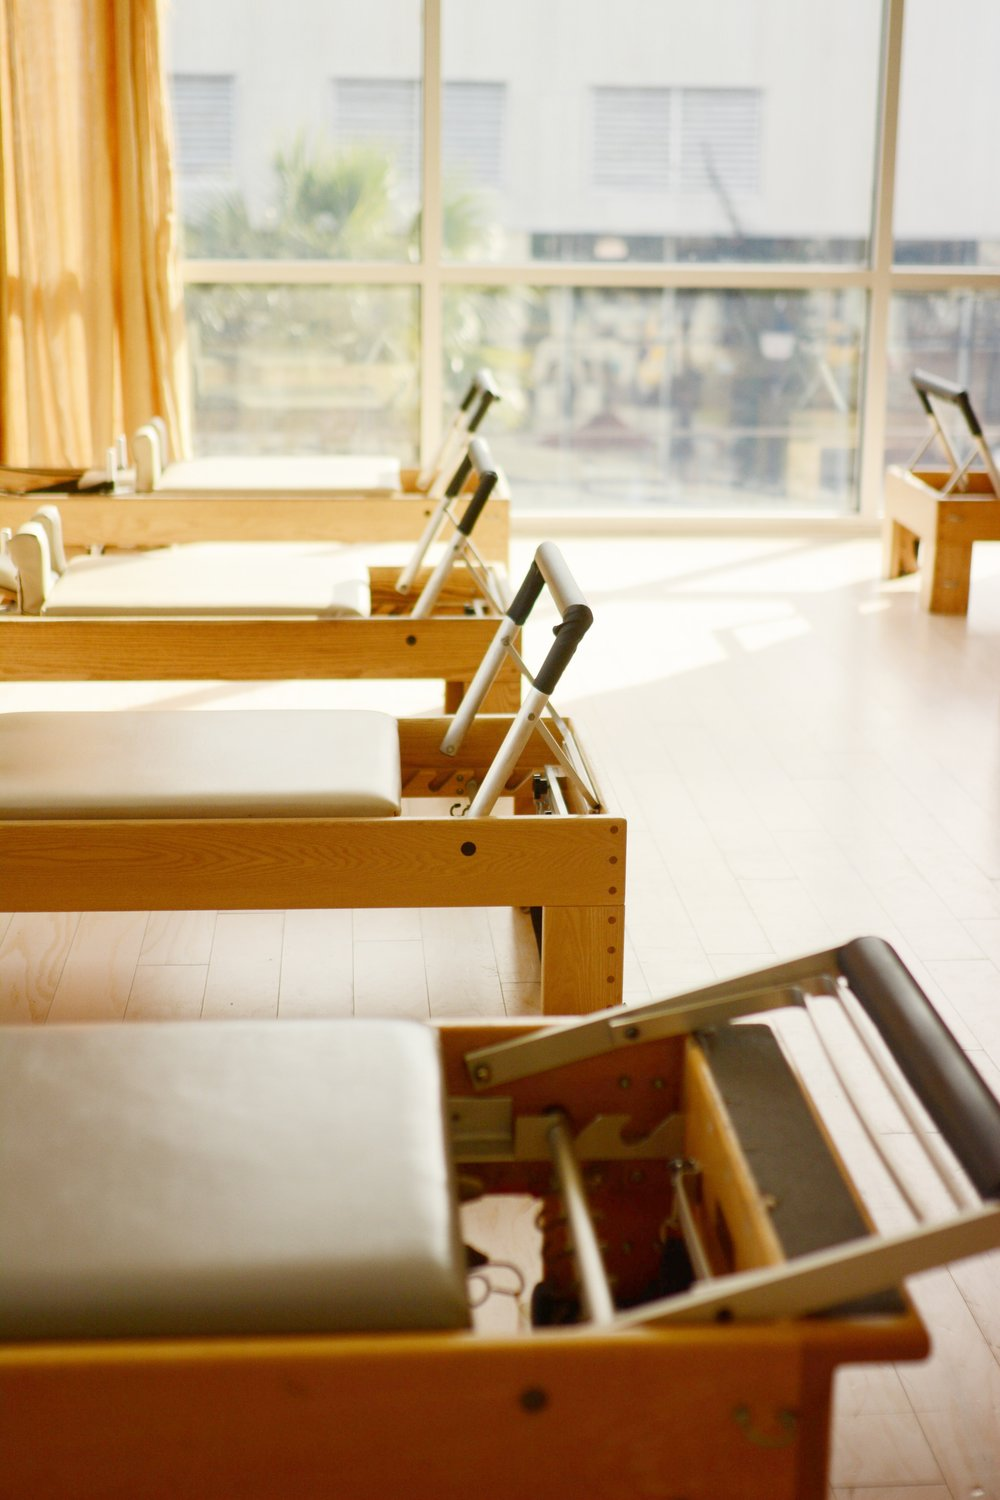 Reformer - The Pilates Reformer is perhaps the most well-known piece of Pilates equipment.  In essence it is a sled with spring attachments, ropes, and straps.  The spring resistance can assist or resist muscular patterns in order to facilitate neuromuscular re-education.